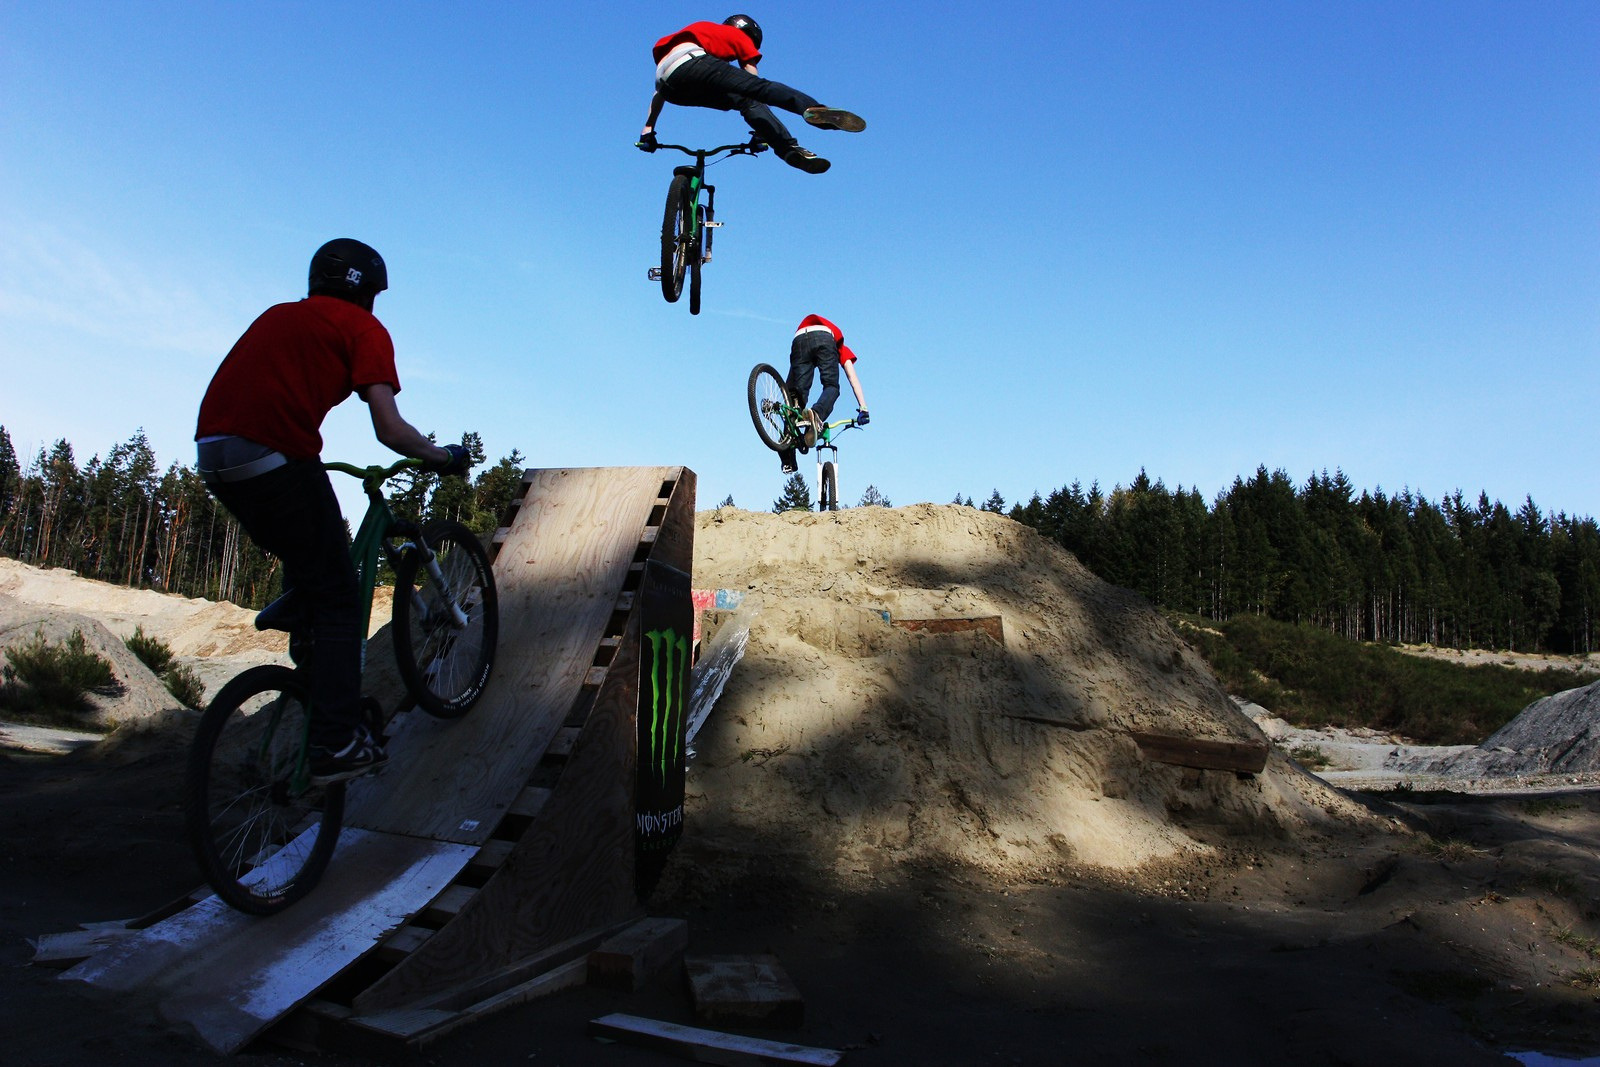 sequence nfc - Super T - Mountain Biking Pictures - Vital MTB